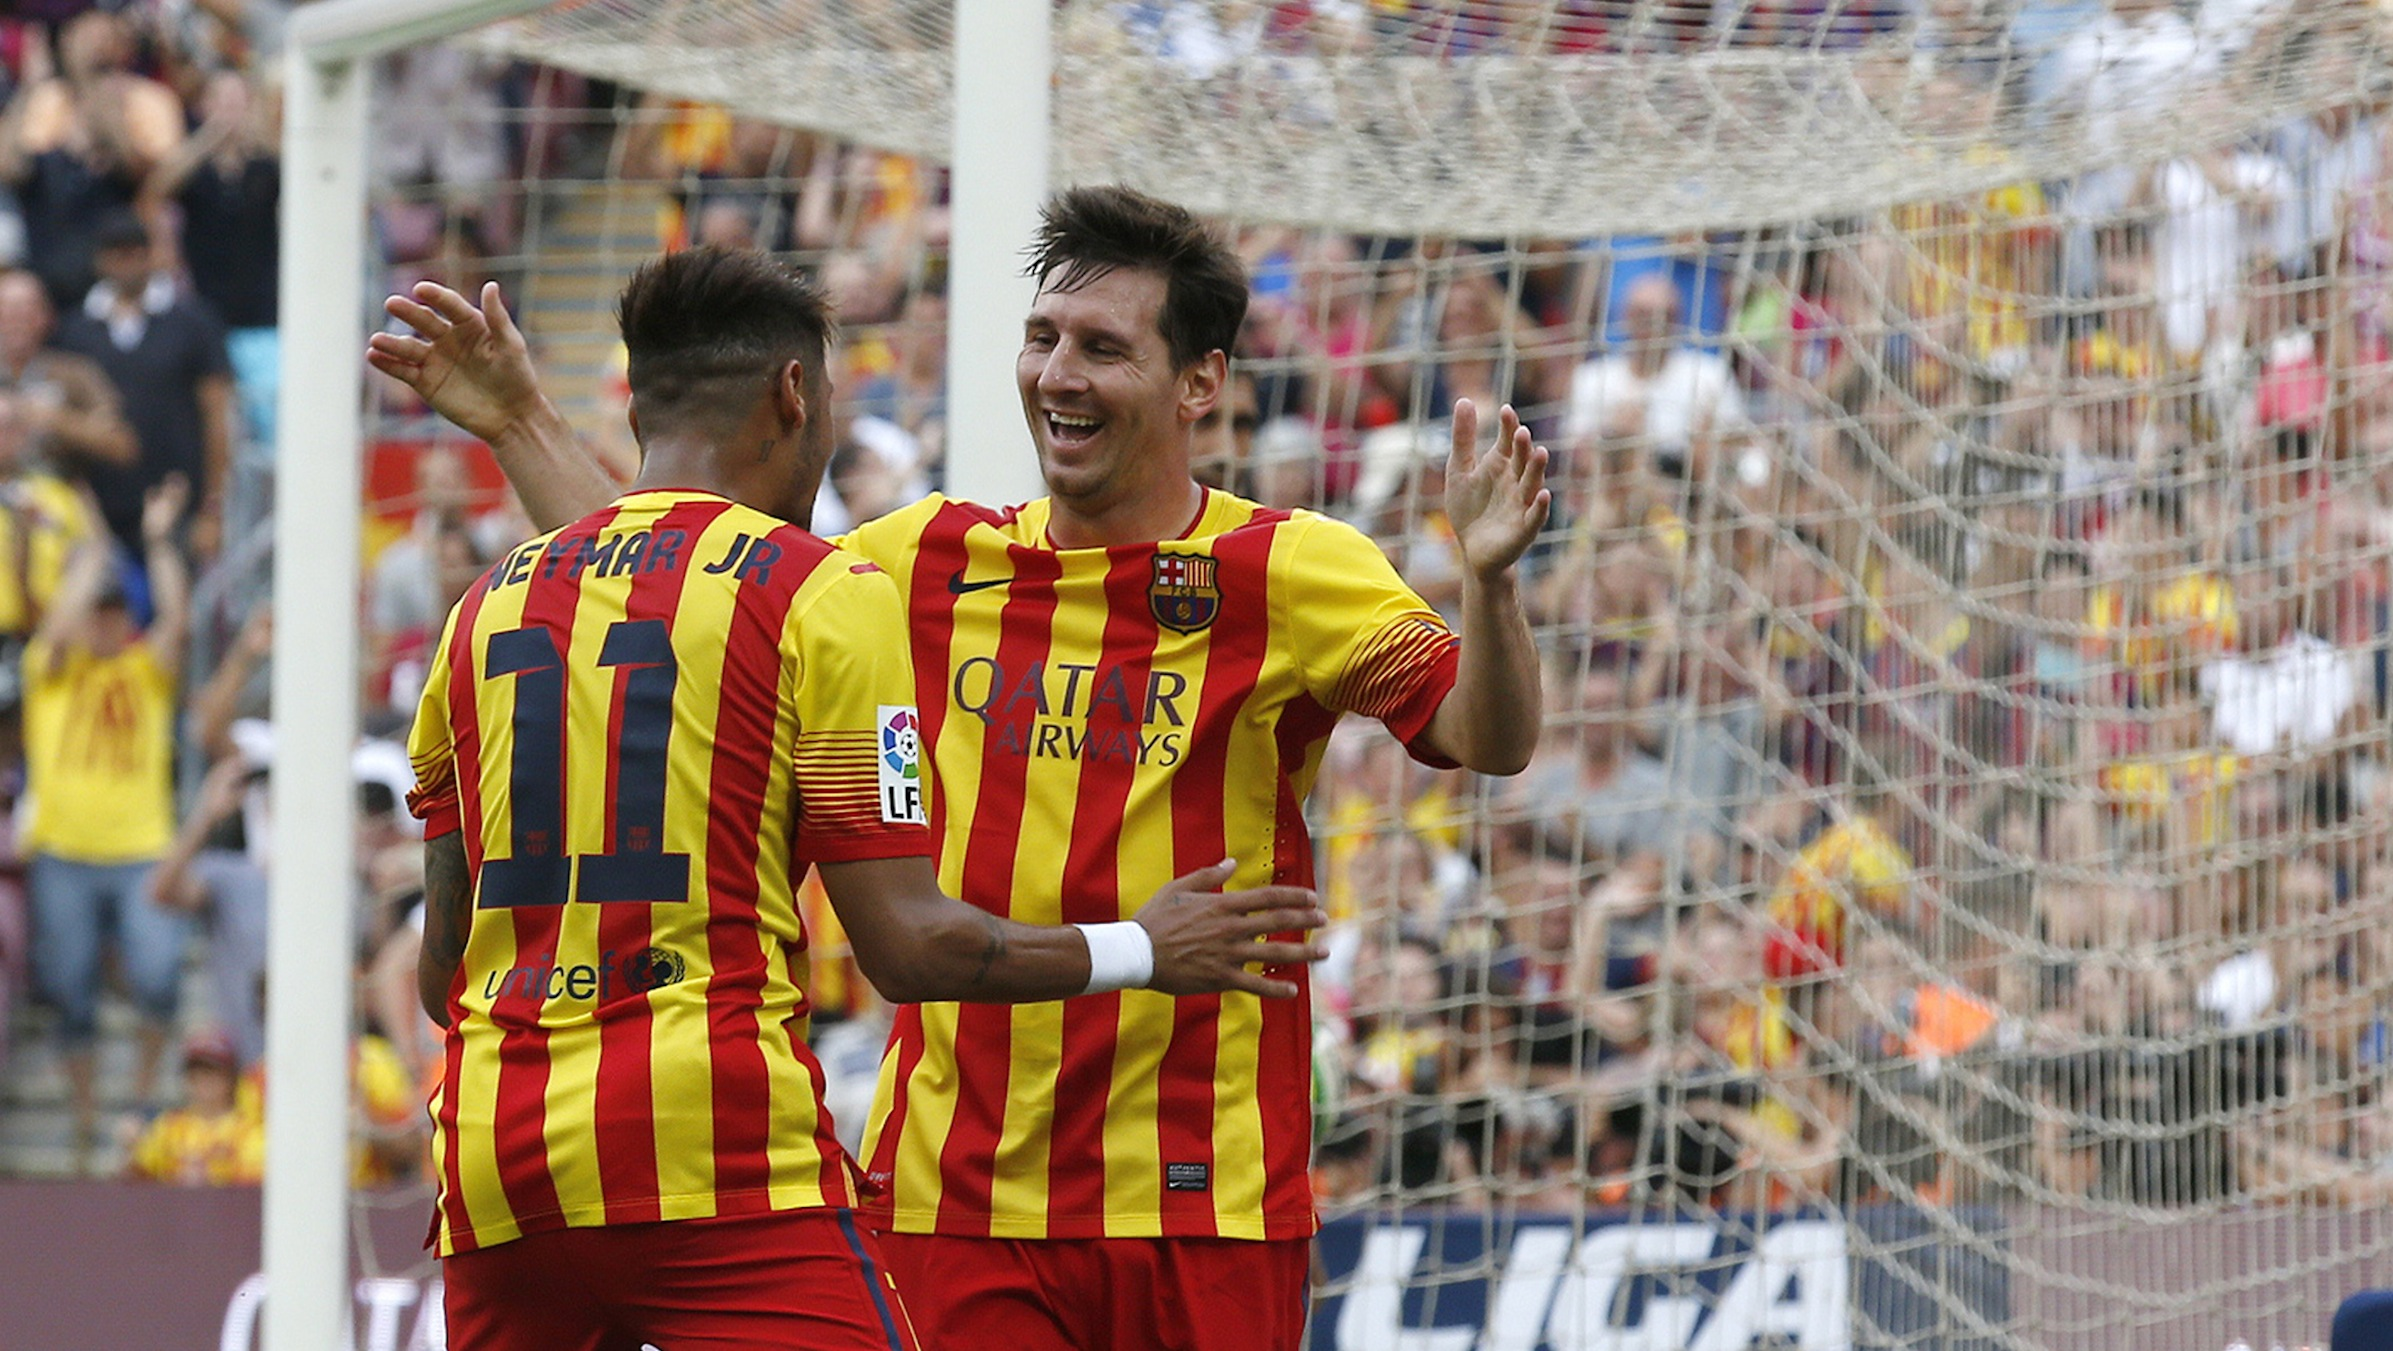 Barcelona's Neymar (L) celebrates his second goal against Athletic with team mate Lionel Messi during their Spanish first division soccer match at Nou Camp stadium in Barcelona September 13, 2014. REUTERS/Gustau Nacarino (SPAIN - Tags: SPORT SOCCER) - RTR463F2